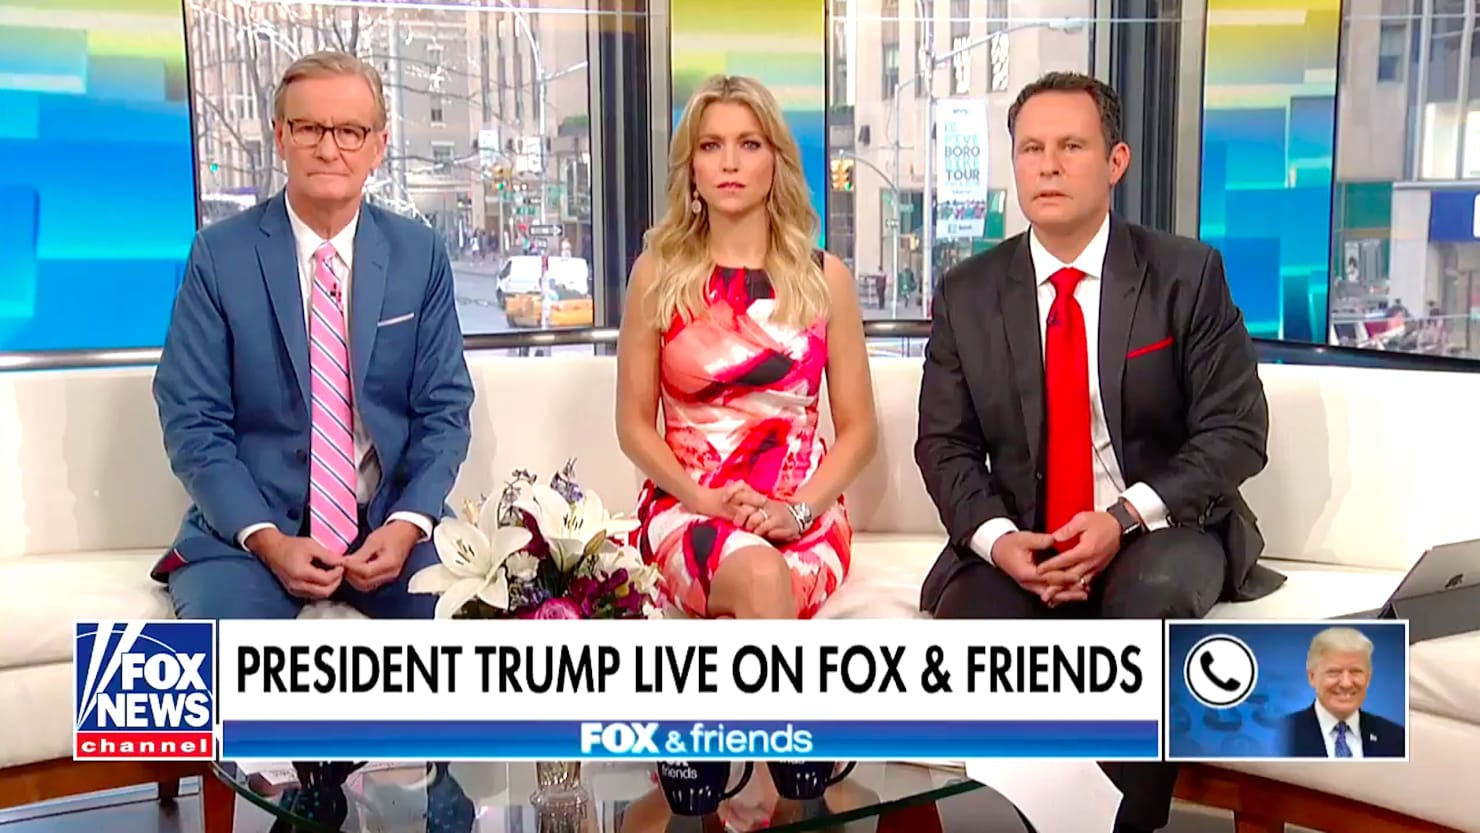 Max Miller: Trump And Fox & Friends, A Match Made in Hell